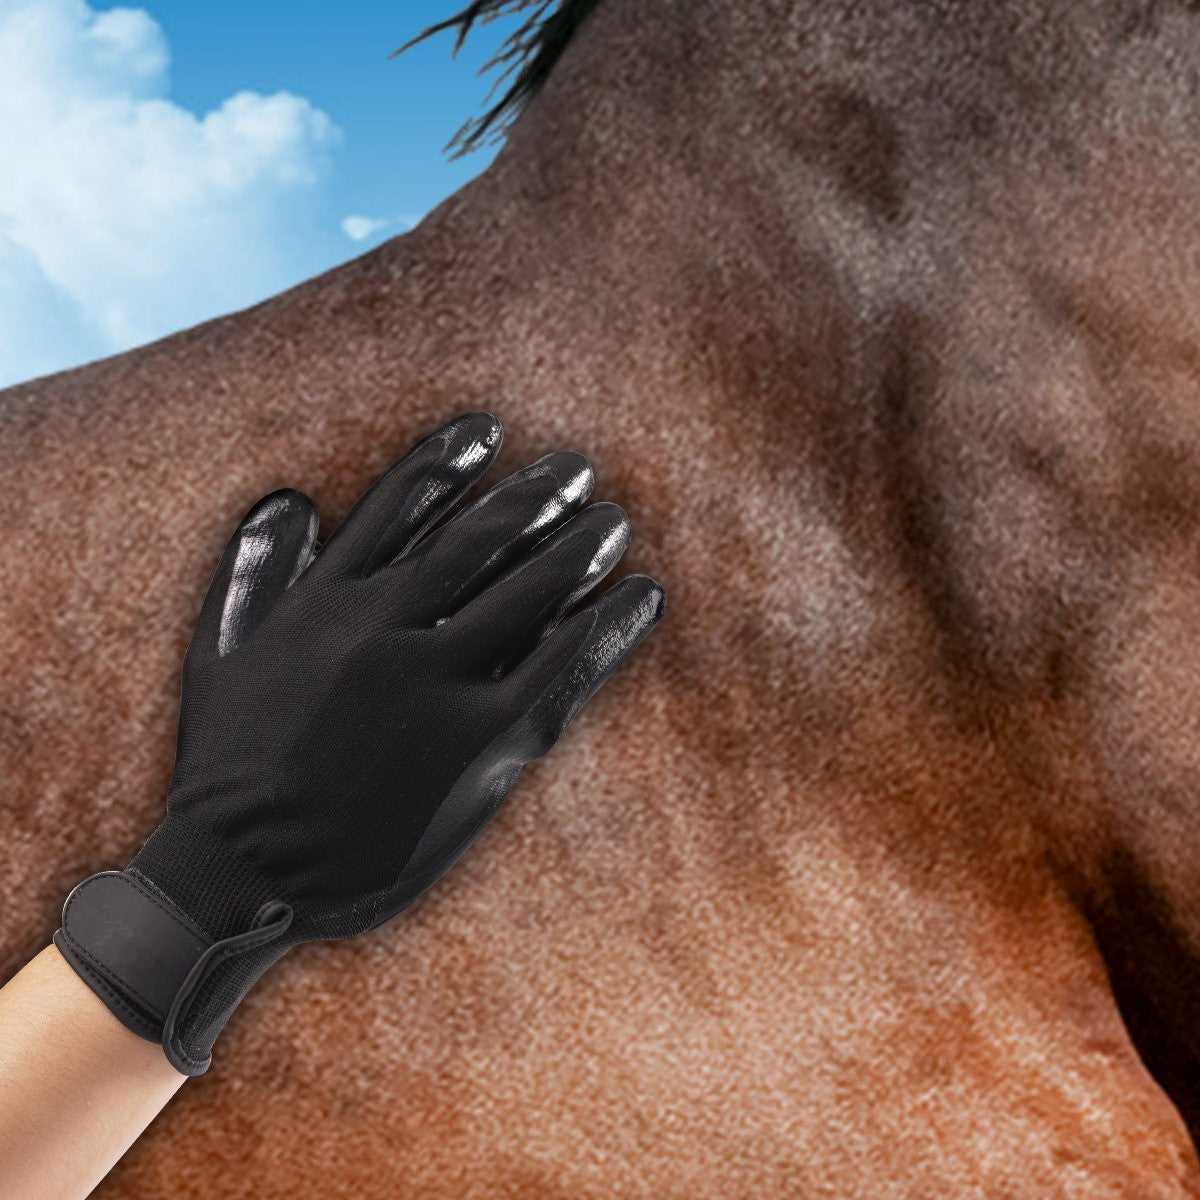 Pet Cleaning Brush Horses Grooming Gloves Comb for Dogs Cats Hair Silicone Massage Deshedding Tools